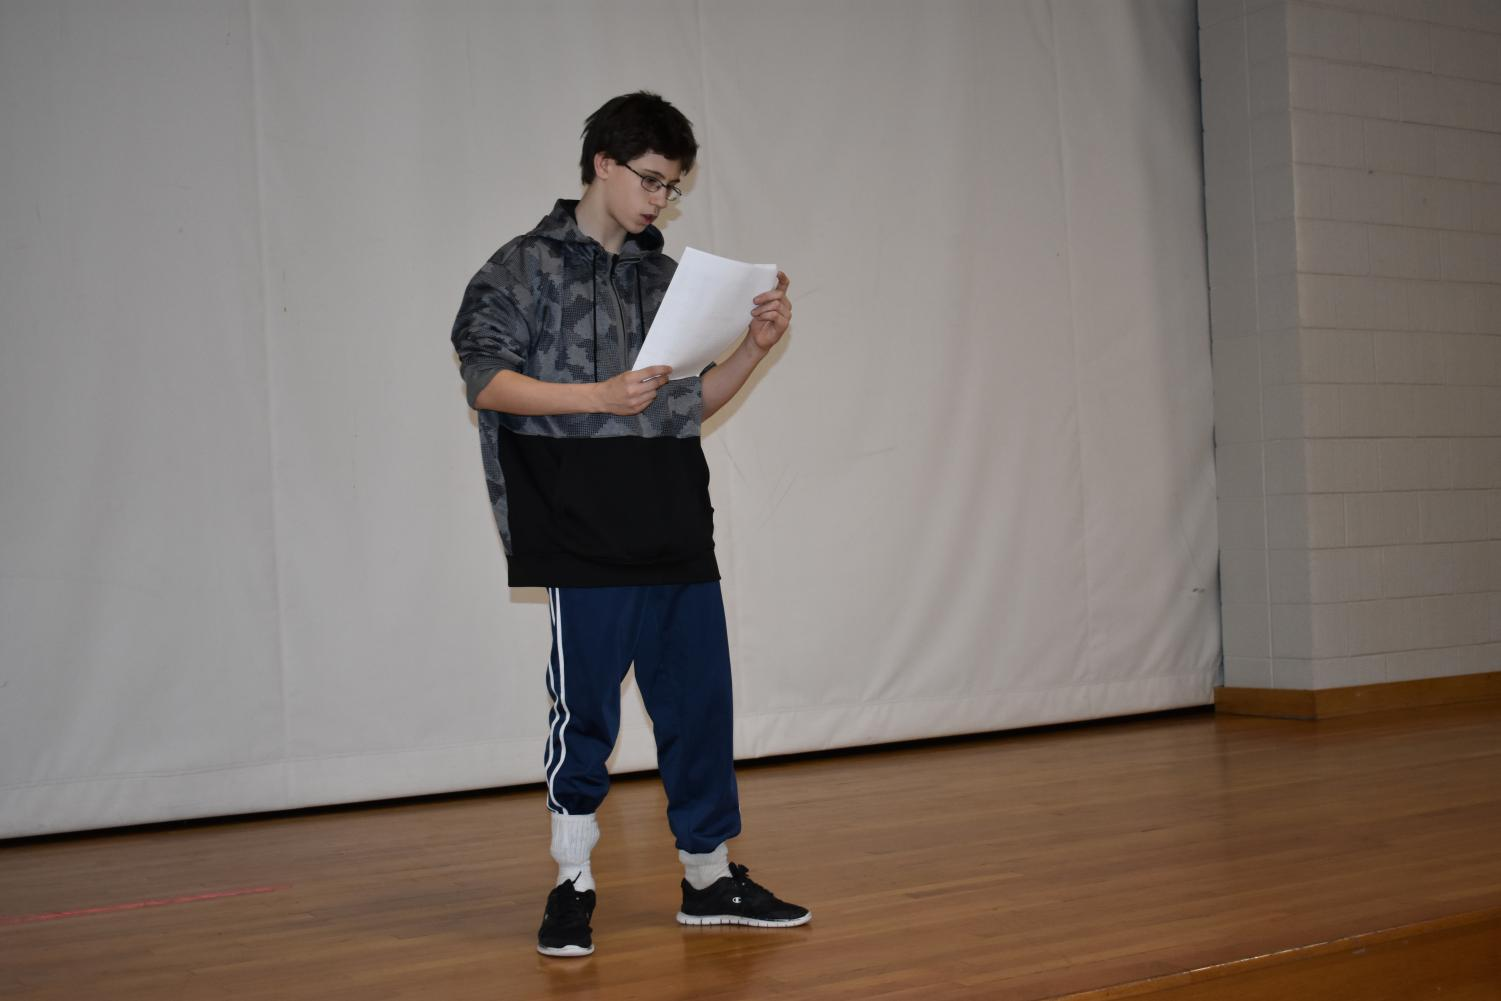 Robert Long-Terwilliger rehearses his lines for his part in the upcoming play.